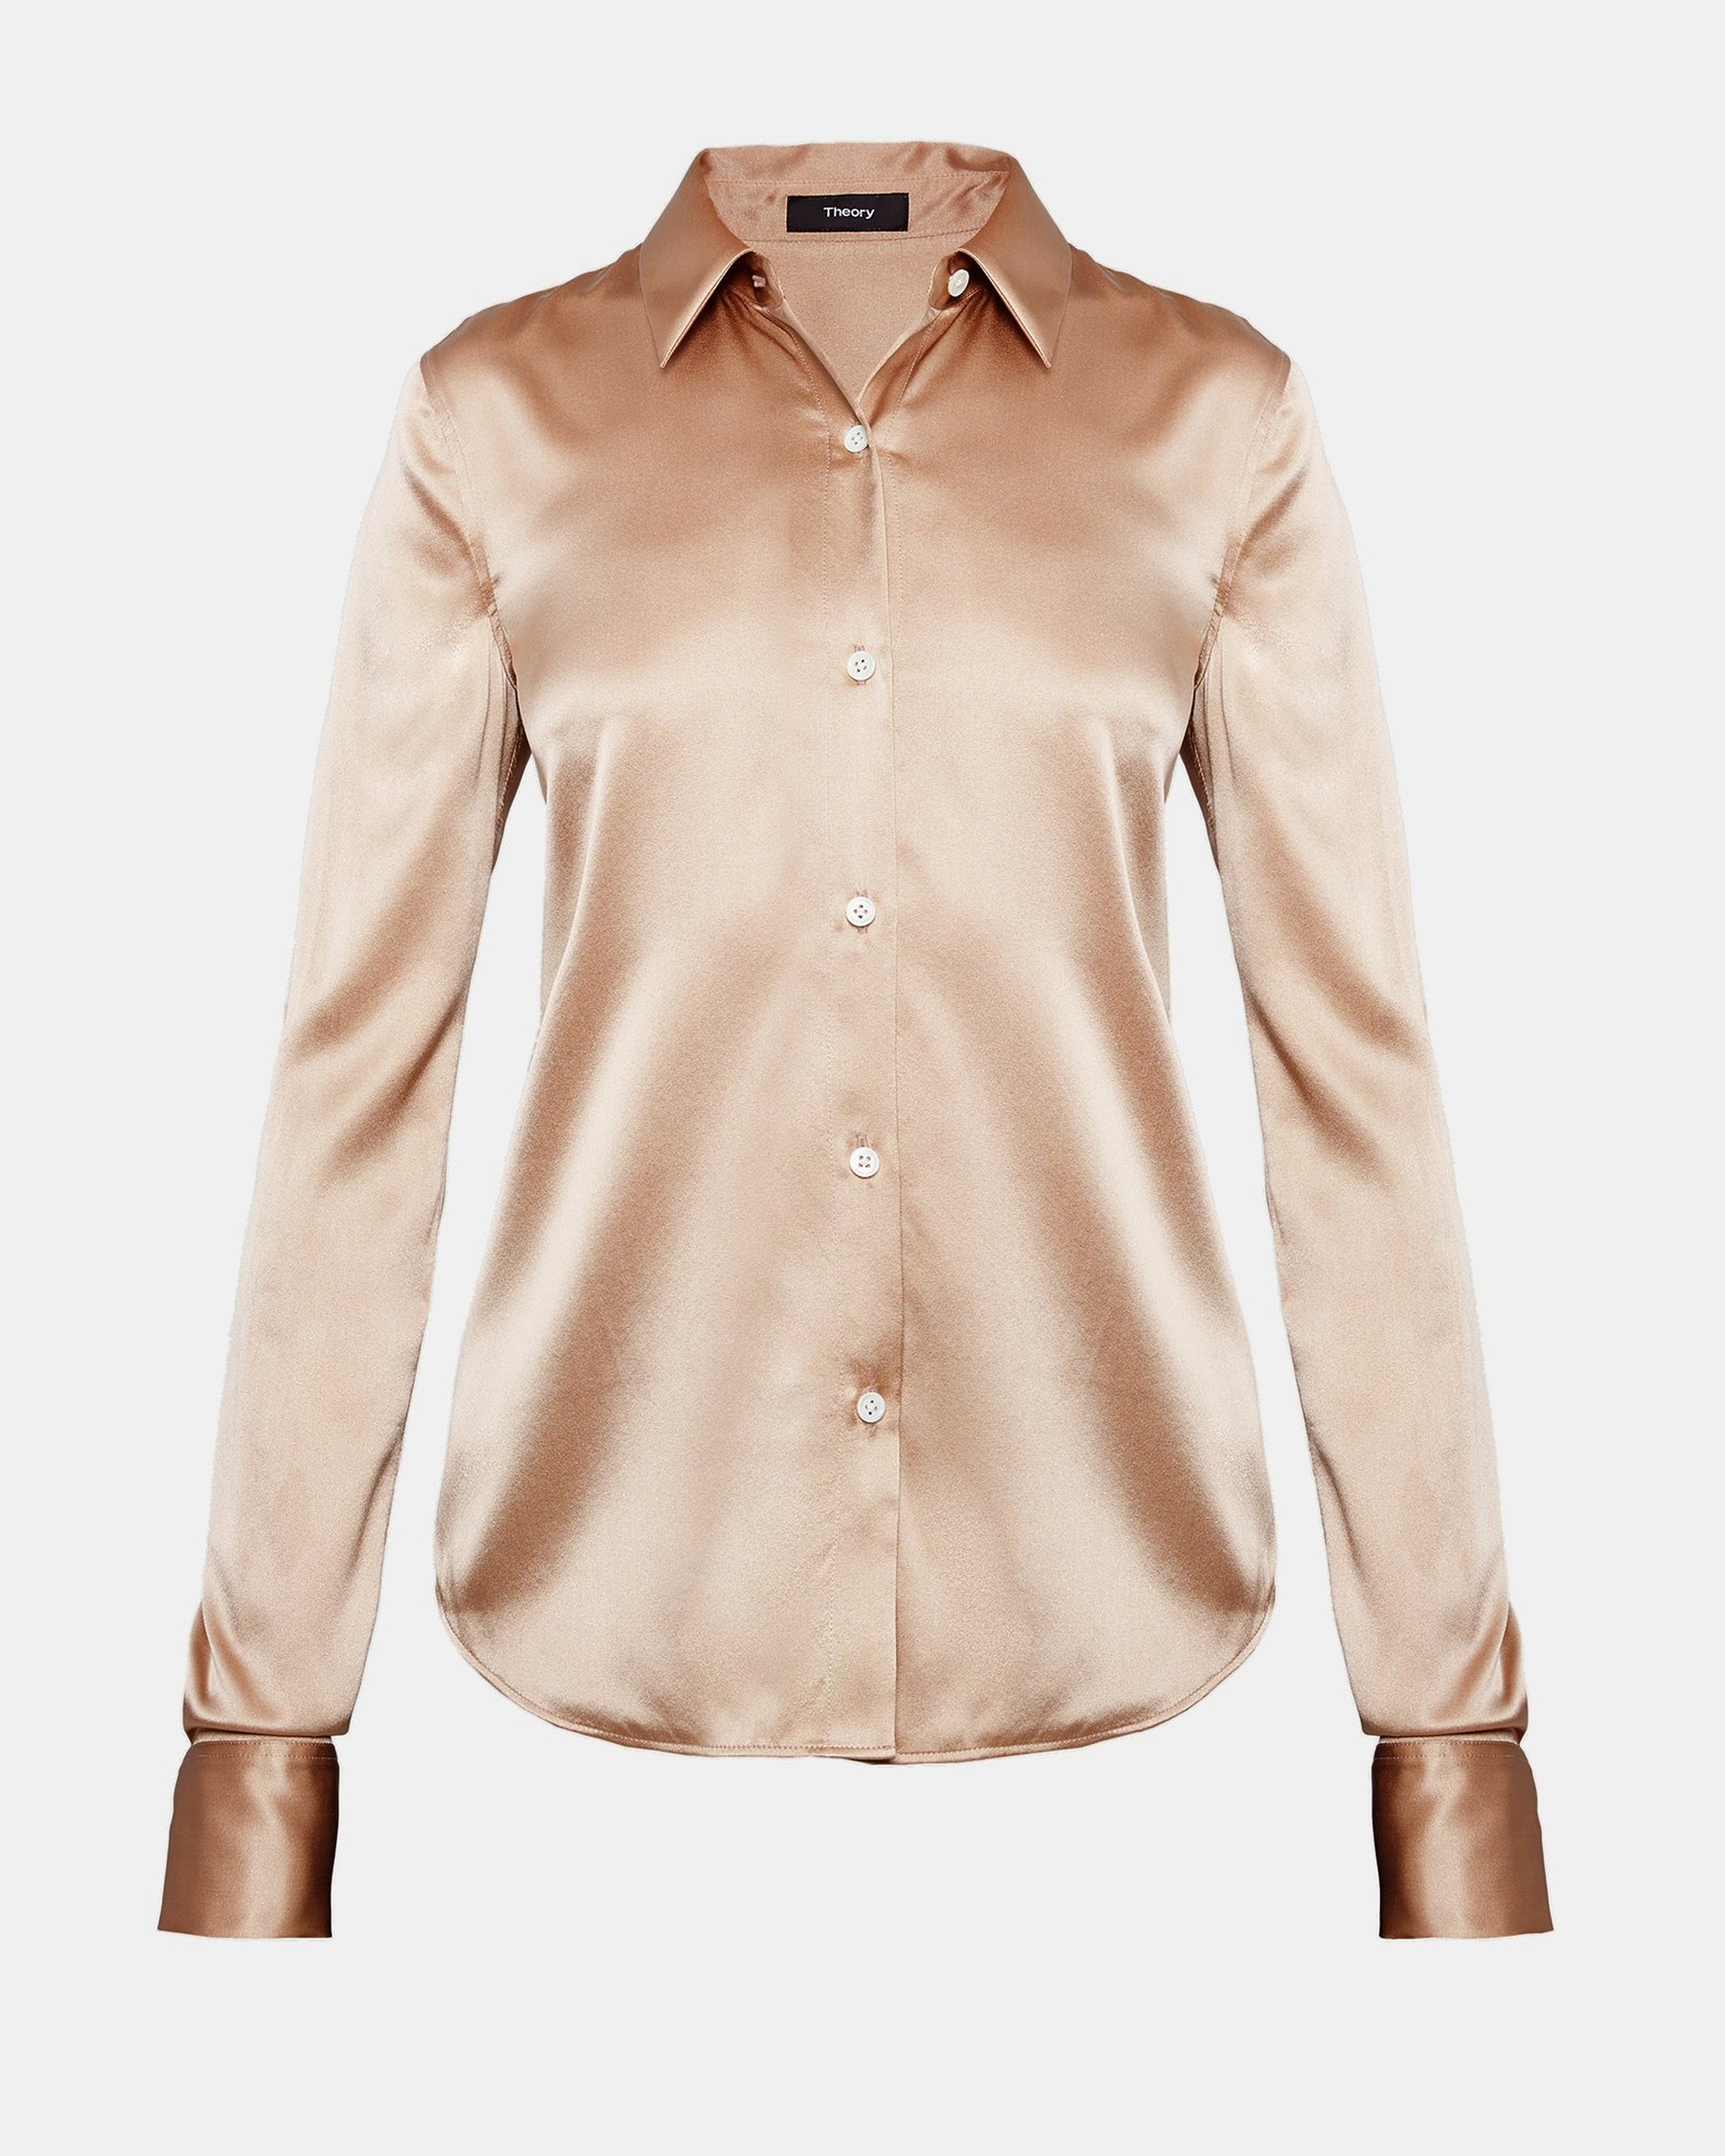 Theory Short Sleeve Satin Blouse Visa Payment For Sale Cheap Sale Manchester Clearance Affordable Outlet Low Price Fee Shipping Pay With Paypal Cheap Online V0UuGrT